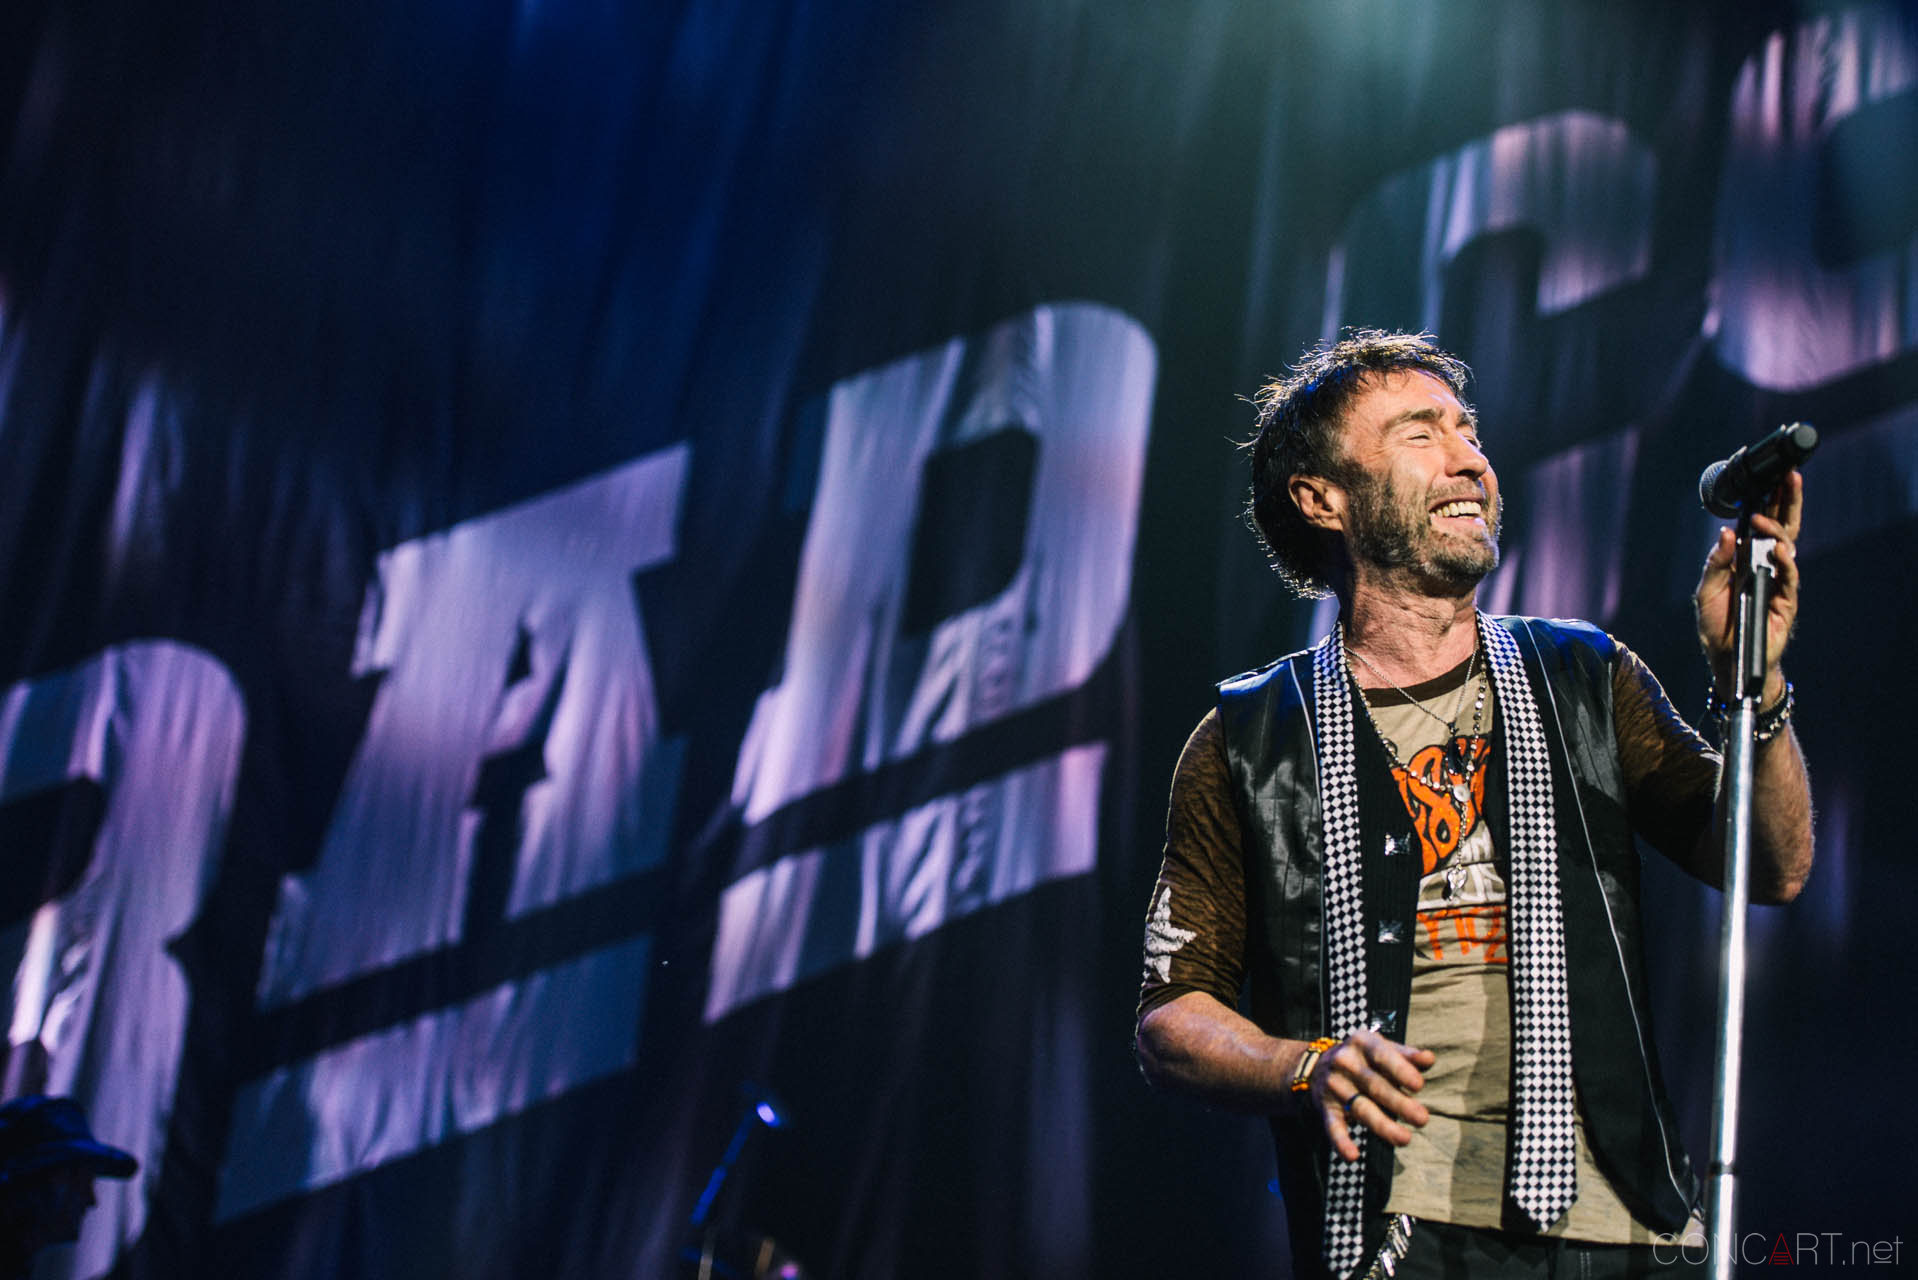 bad_company_live_klipsch_music_center_indianapolis_2013-12